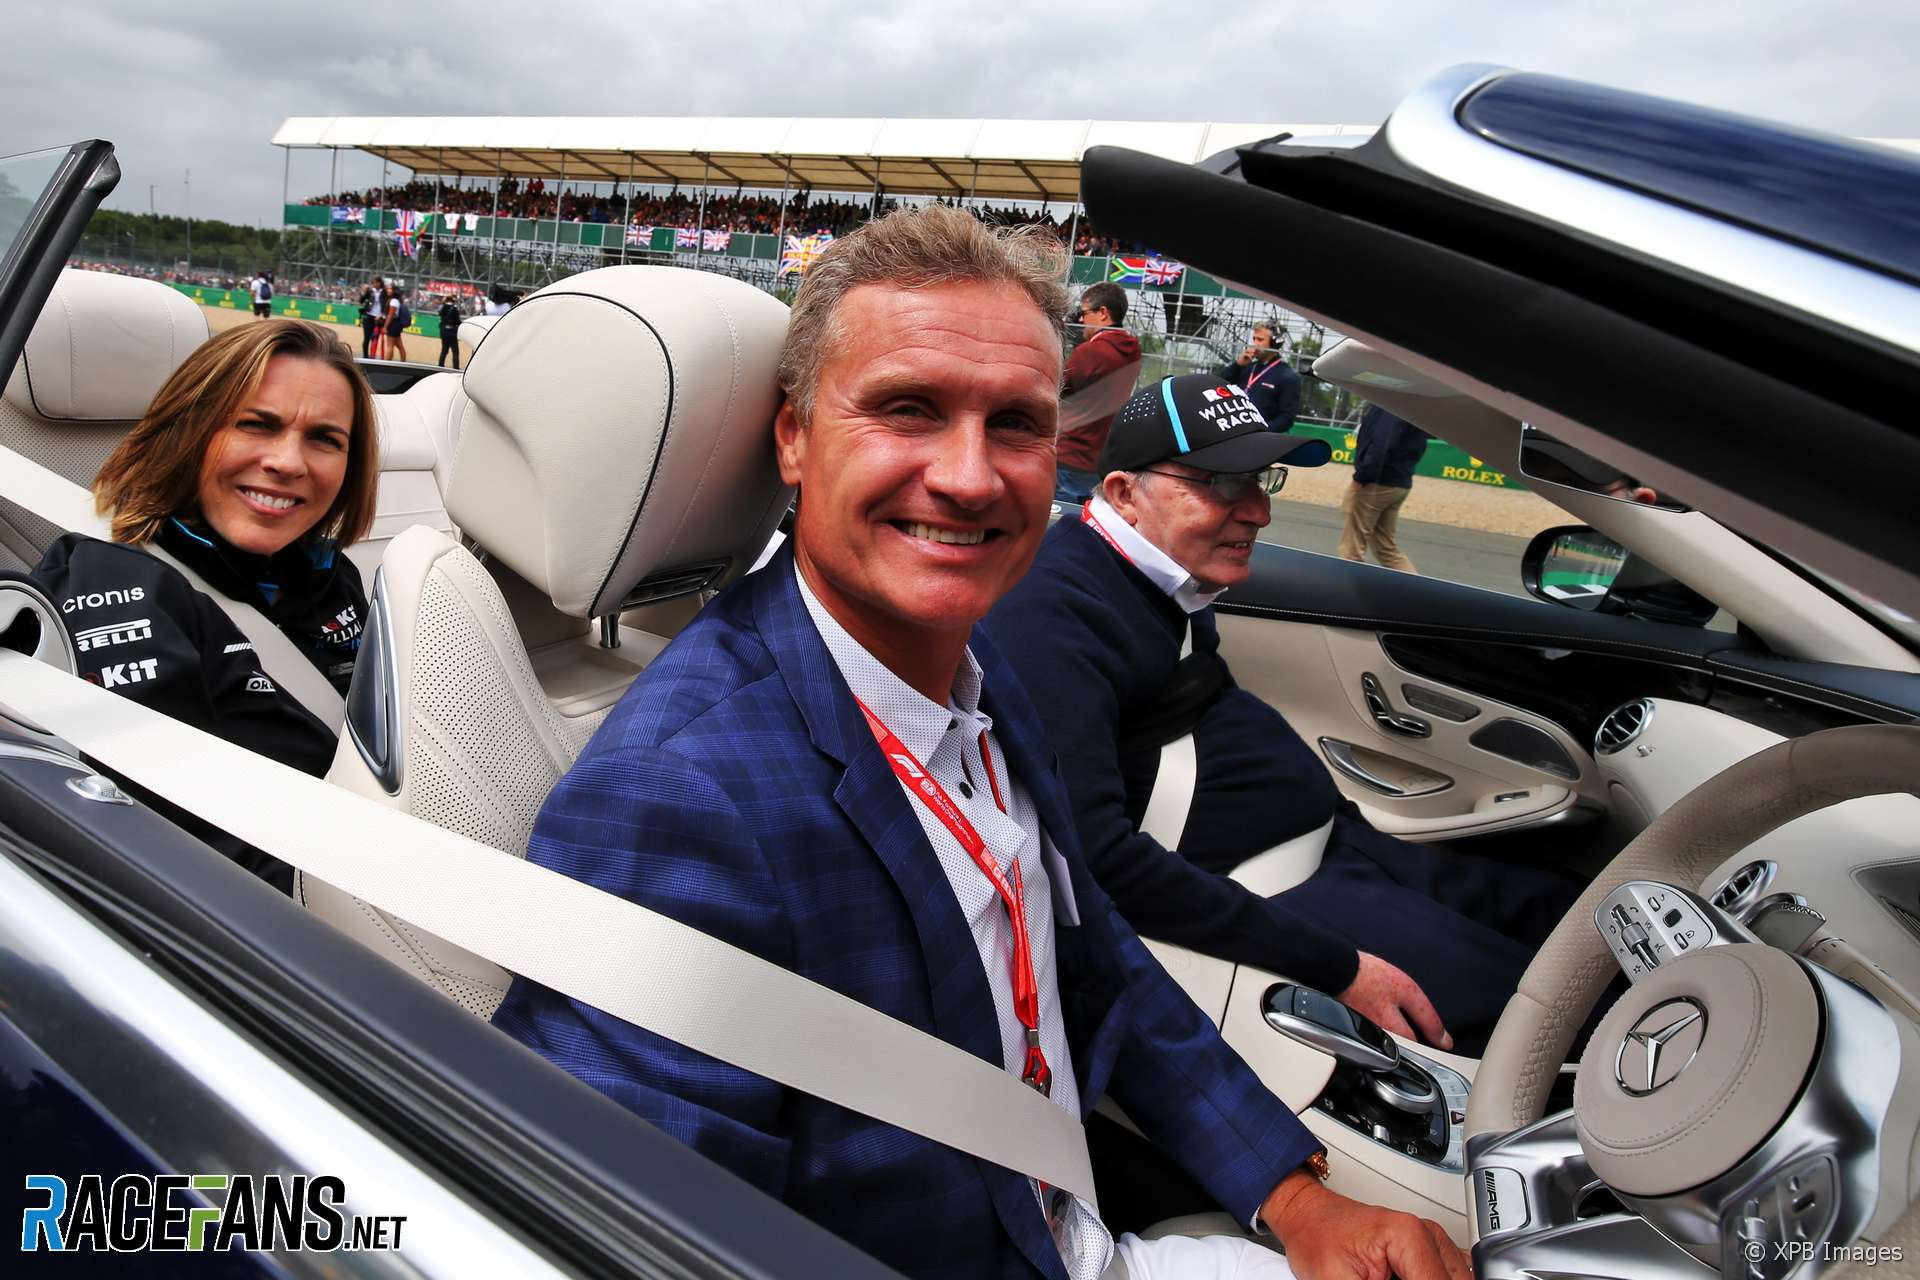 David Coulthard, Frank Williams, Claire Williams, Silverstone, 2019